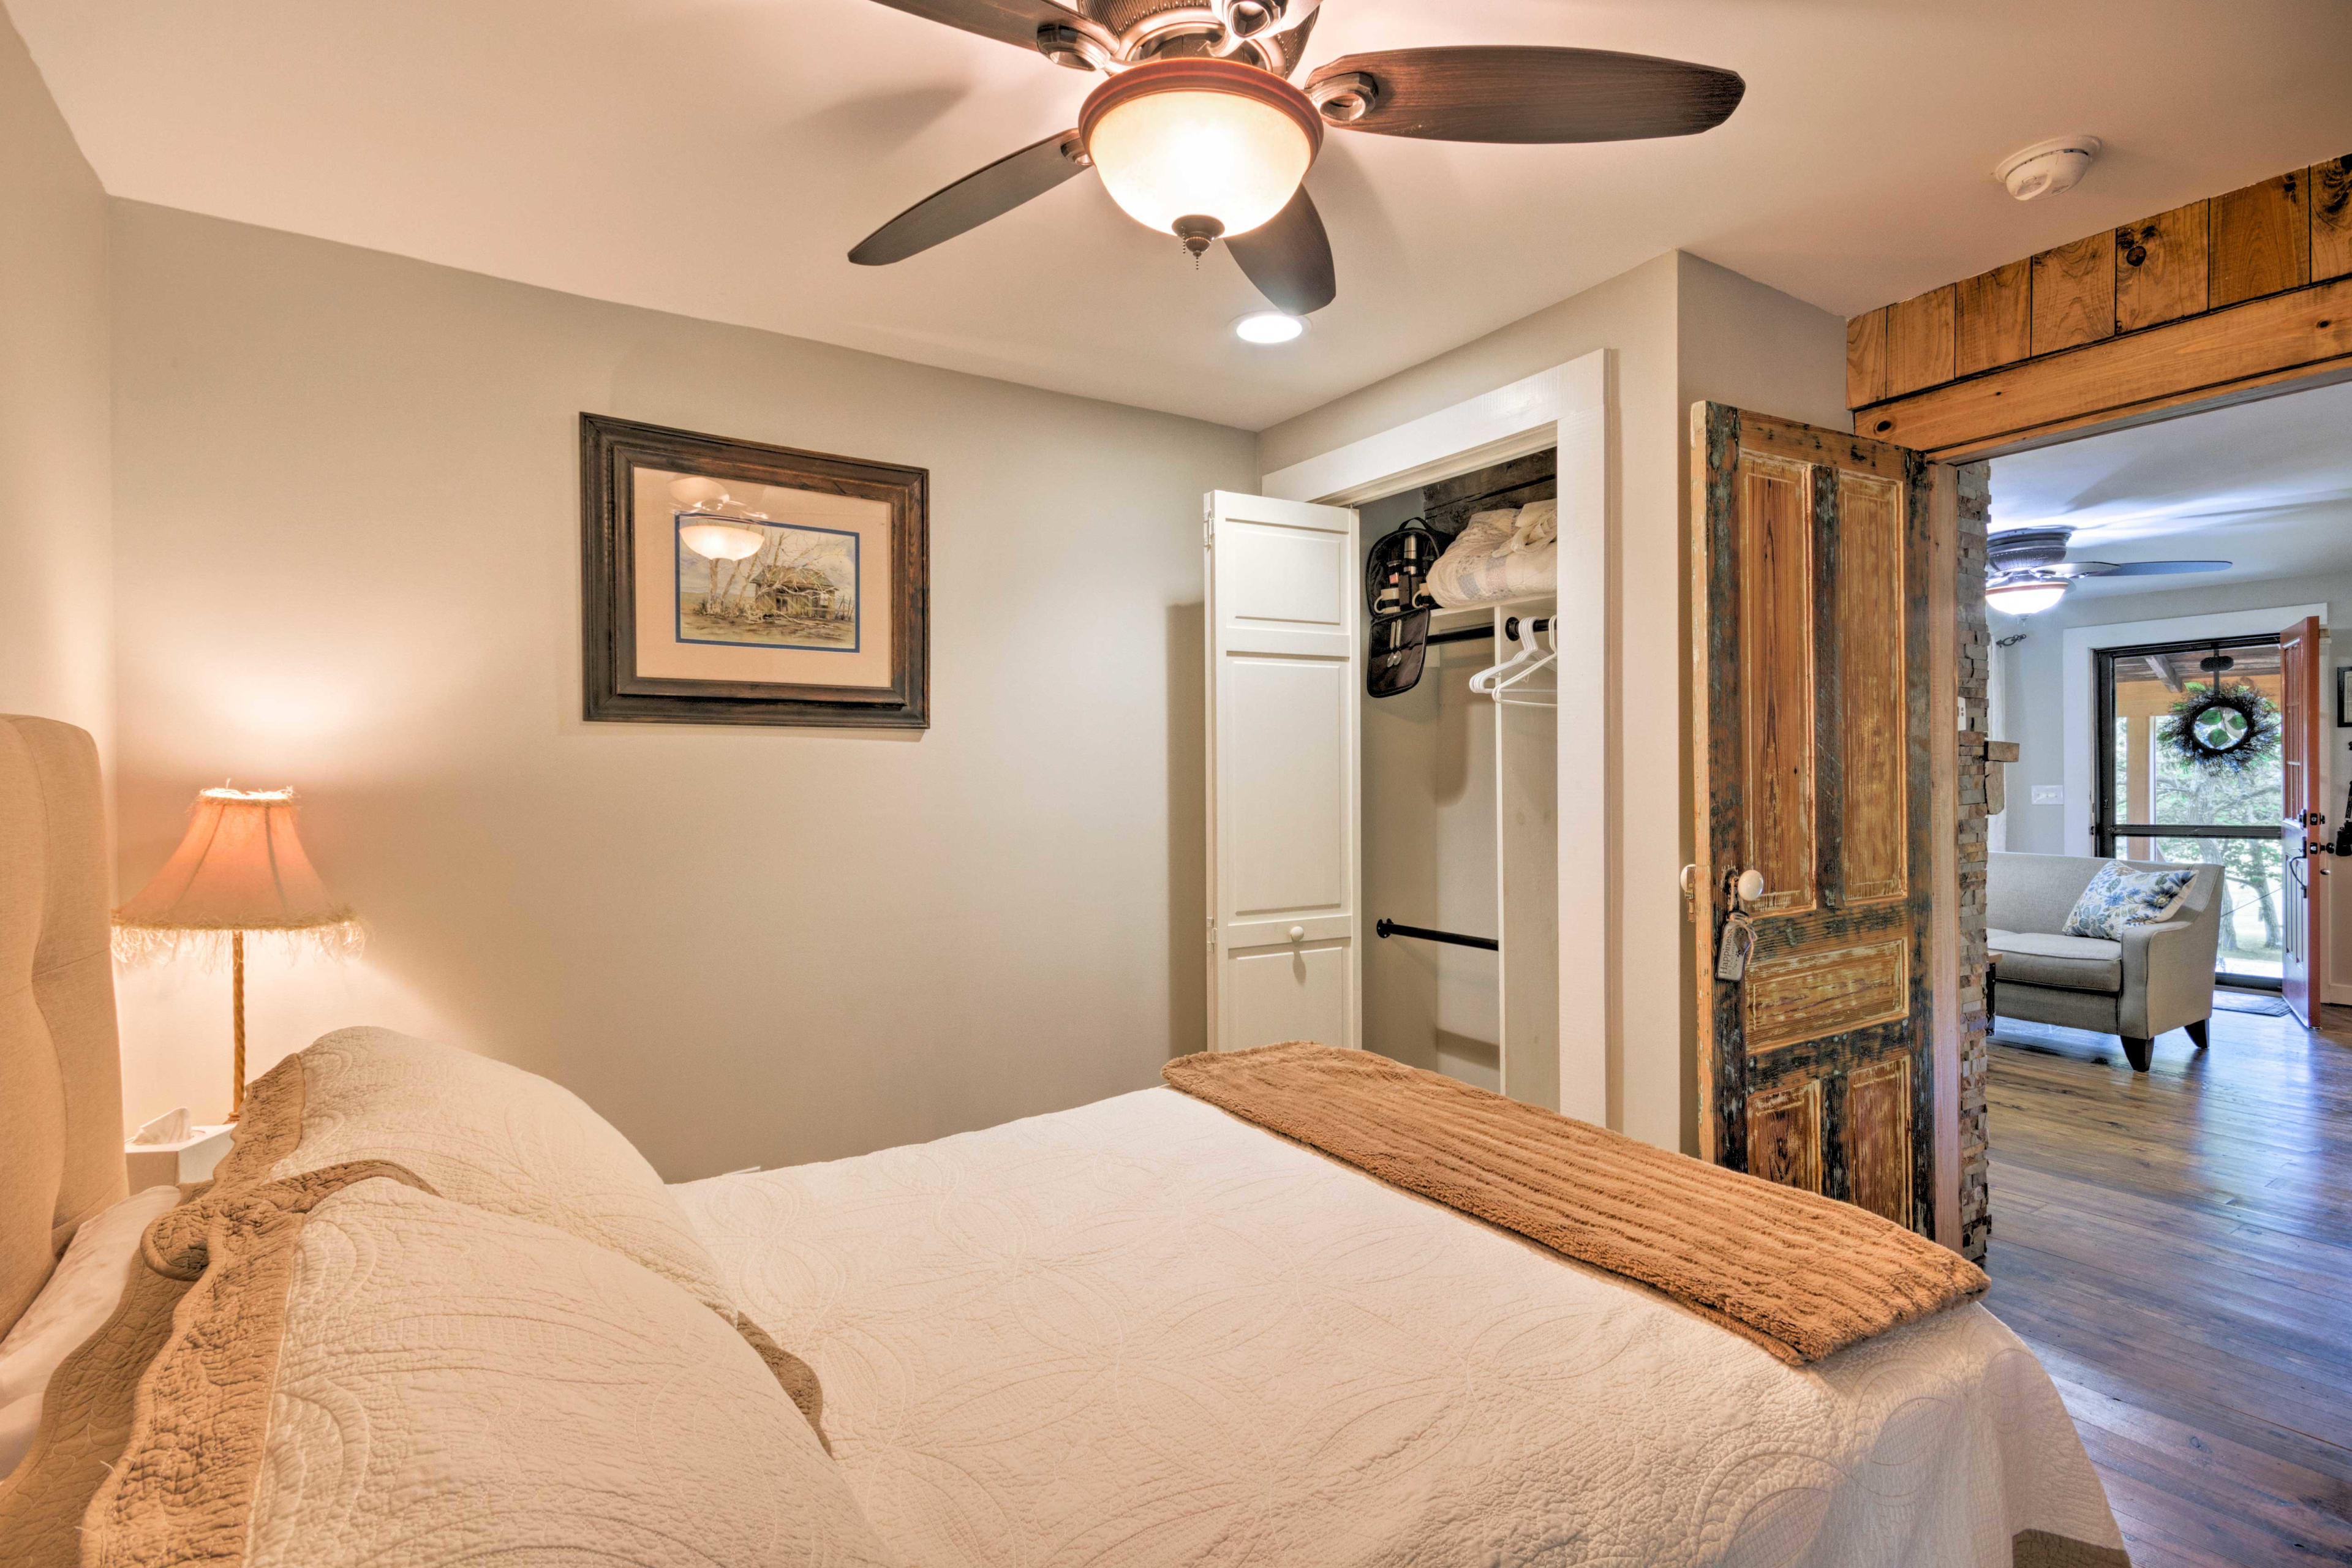 The second bedroom includes a full-sized bed.